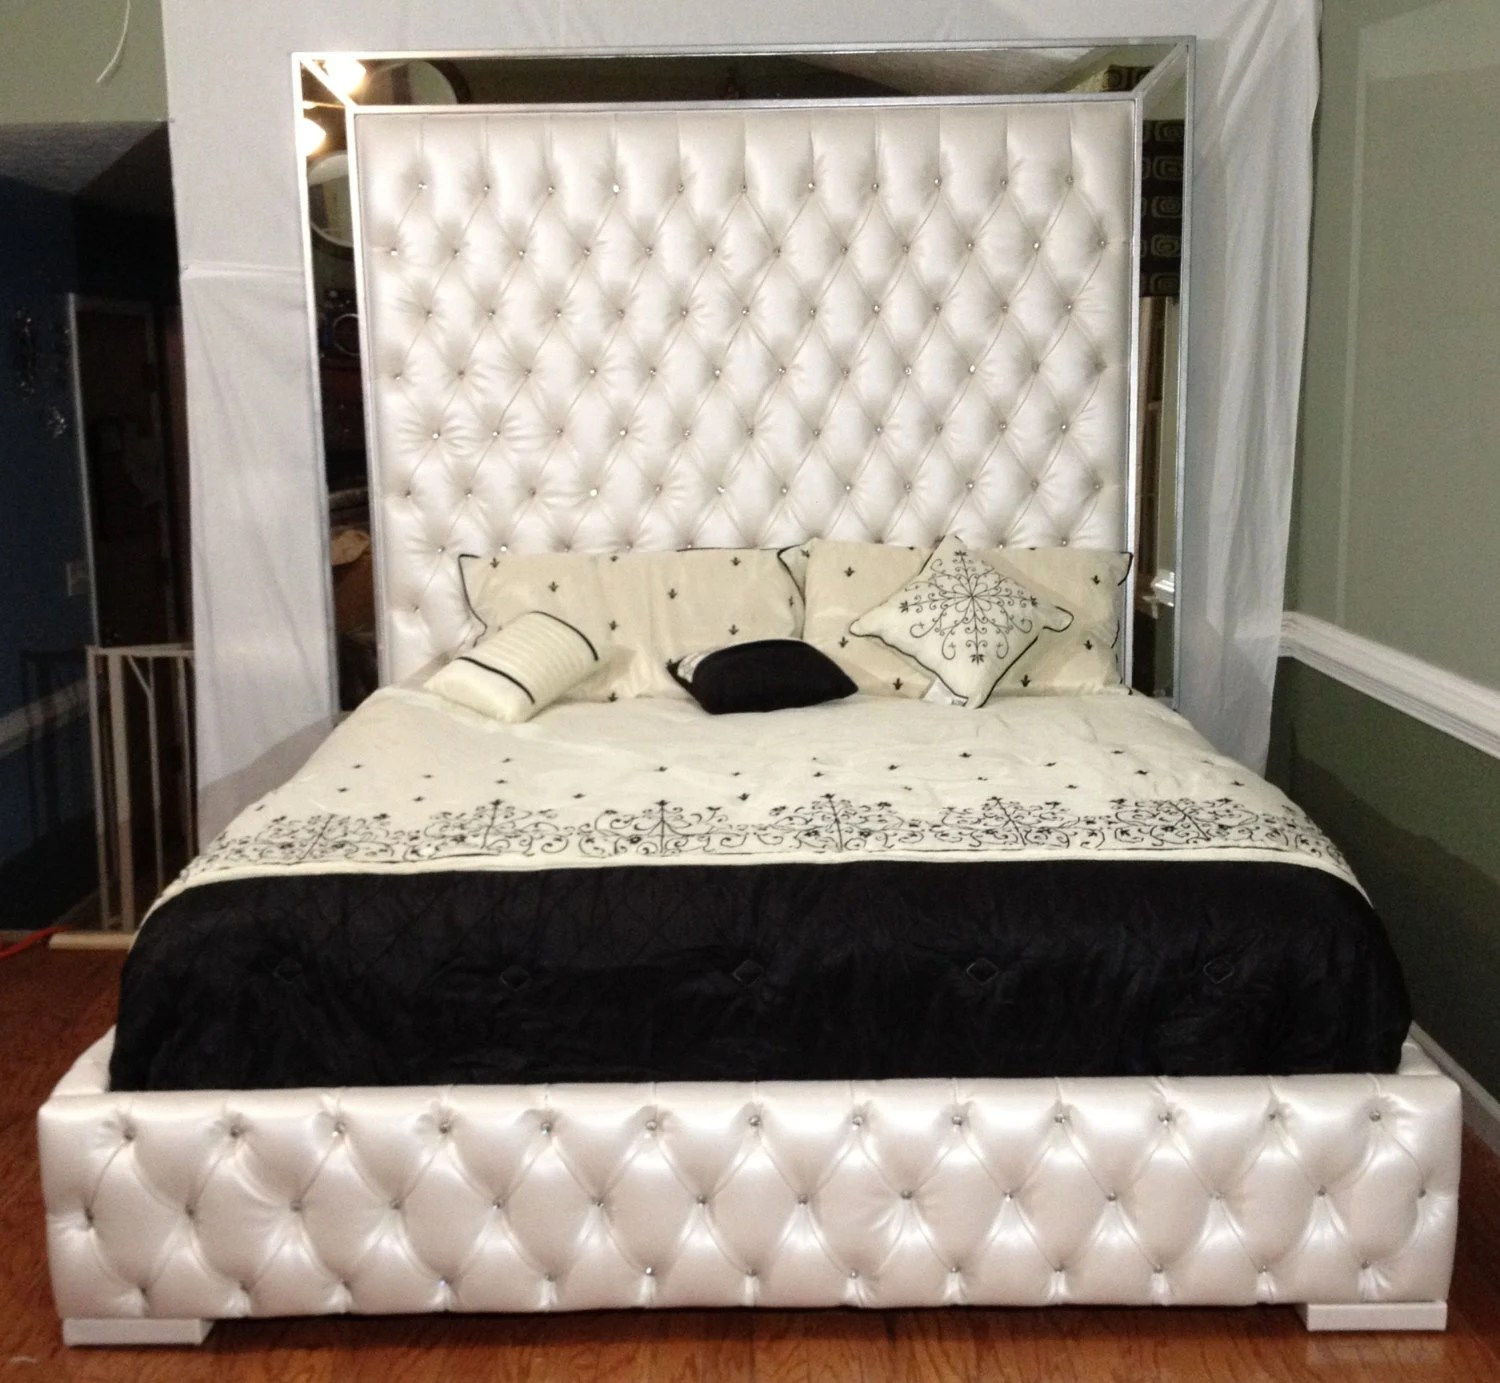 luxurious king tufted bed with mirrors and rhinestones bed with mirror tufted bed upholstered bed bedroom furniture custom bed king size bed